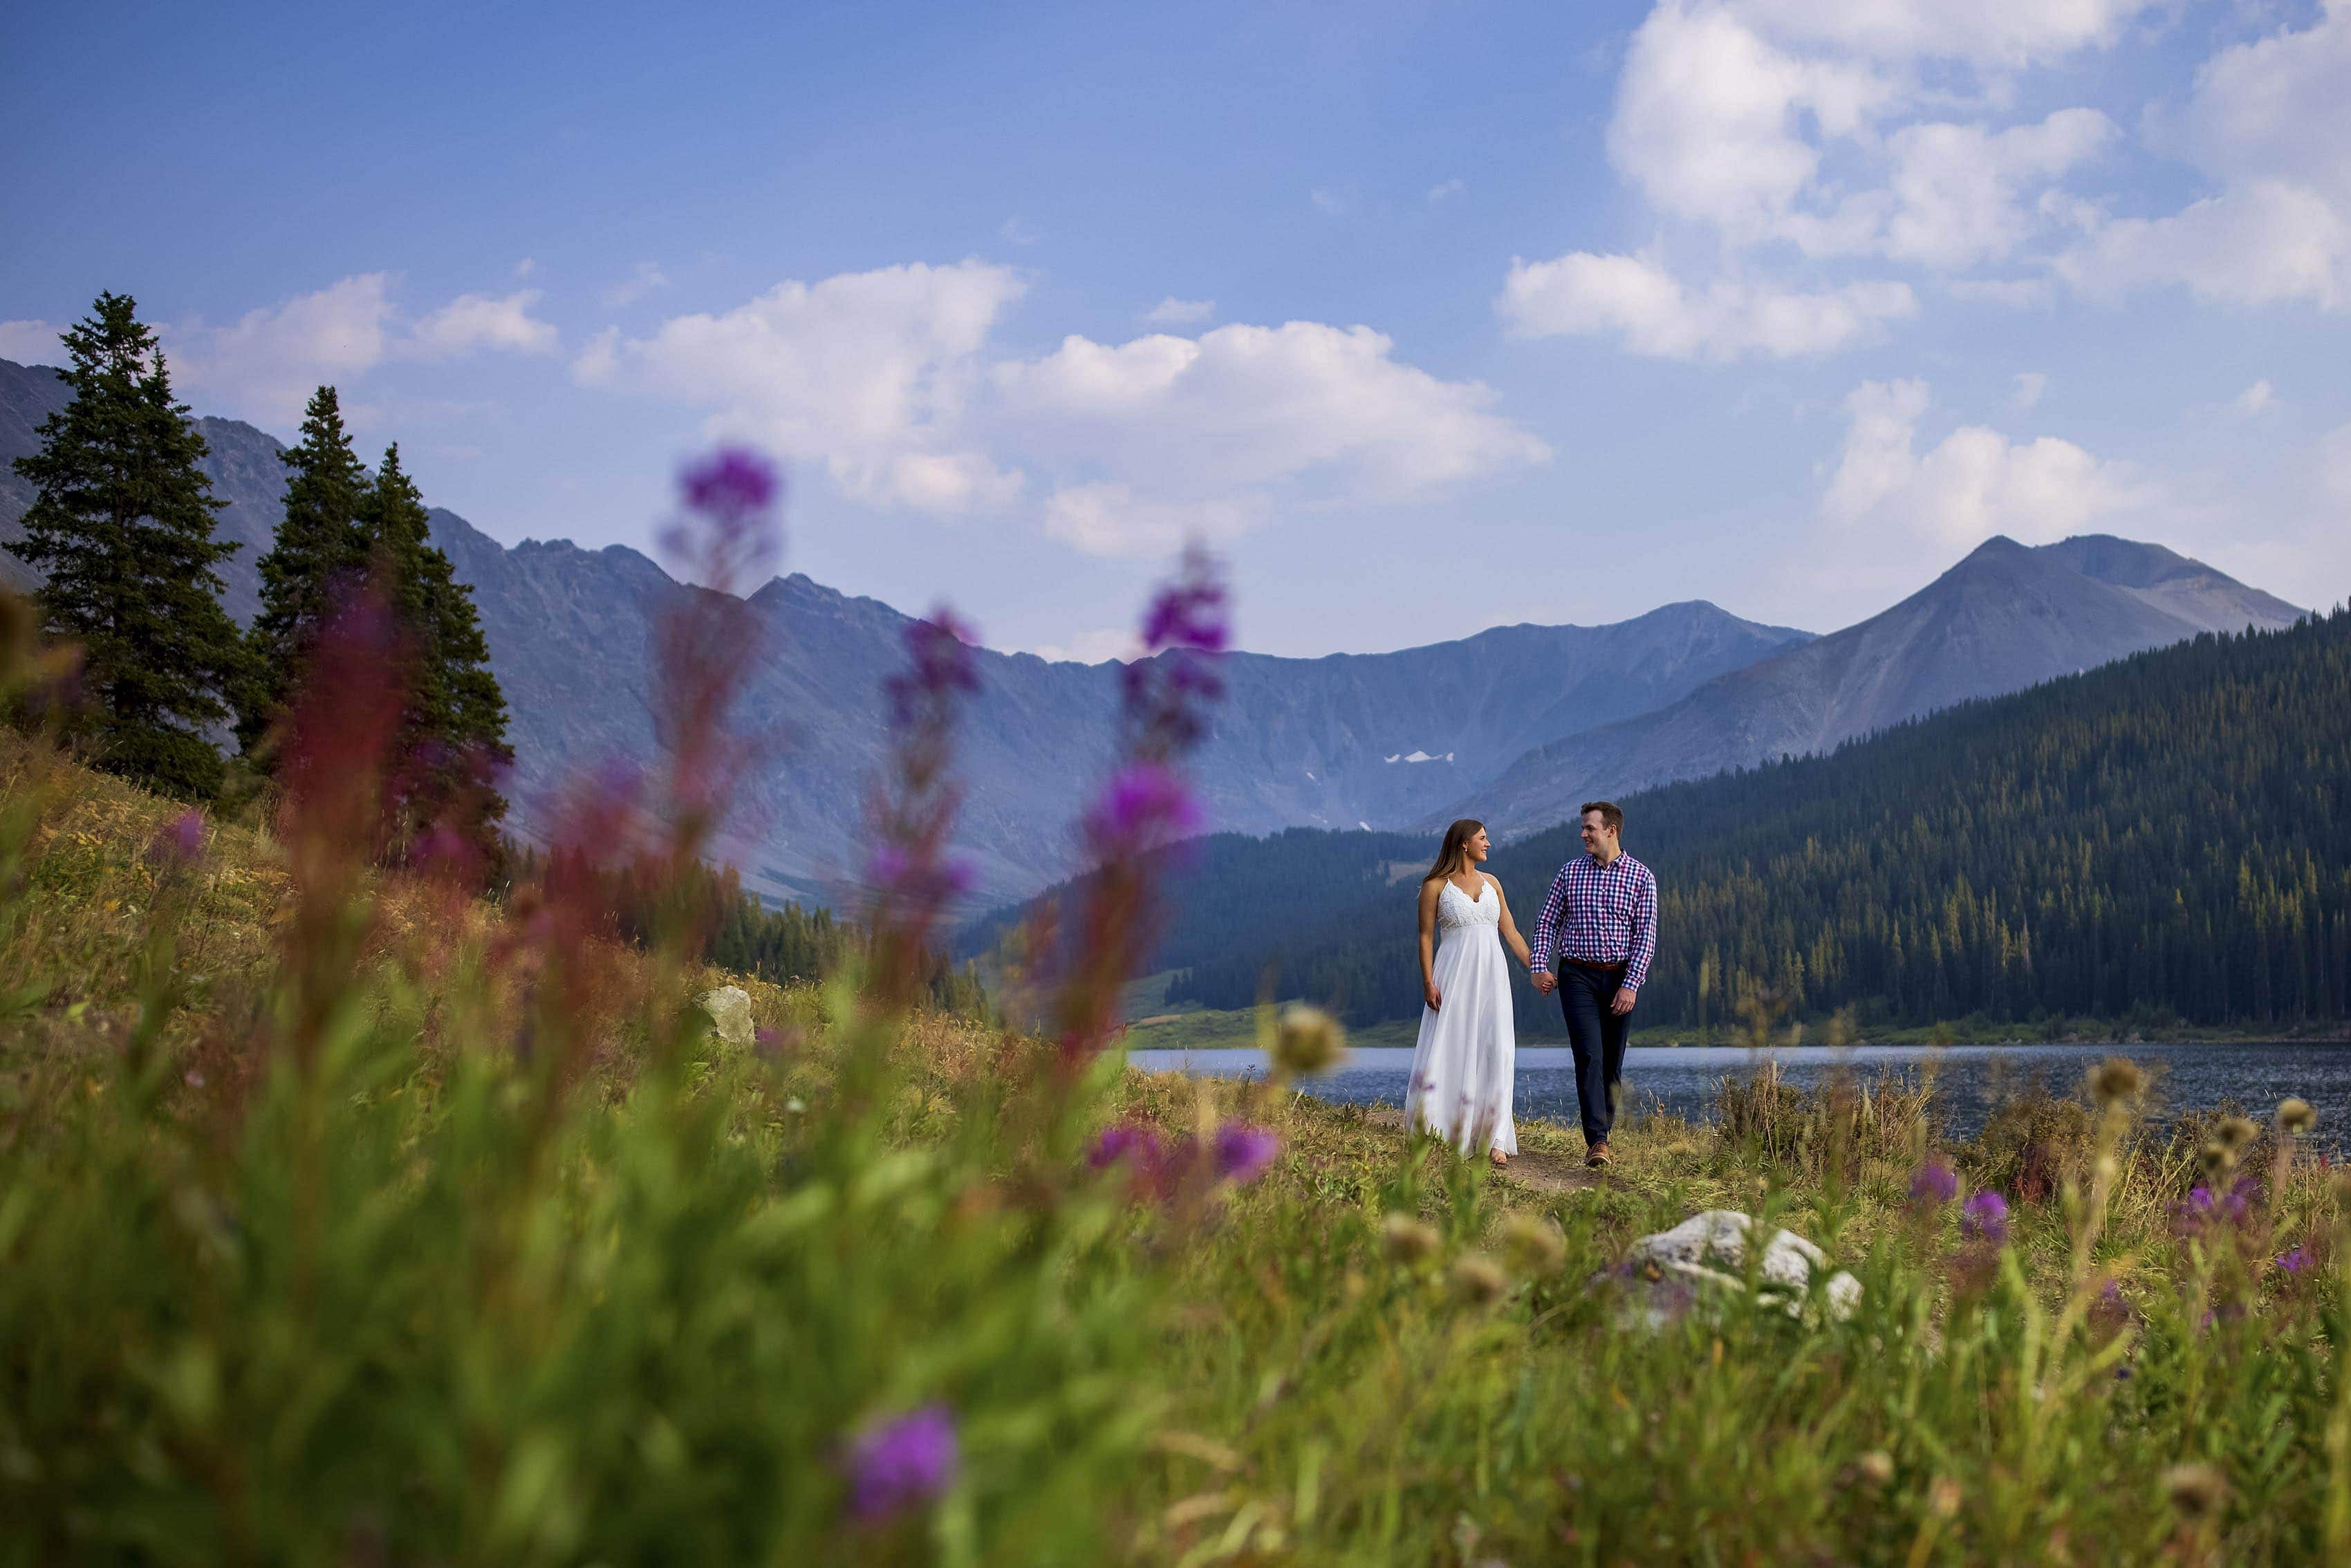 Wildflowers in bloom as a bride and groom walk together at Clinton Gulch Dam Reservoir